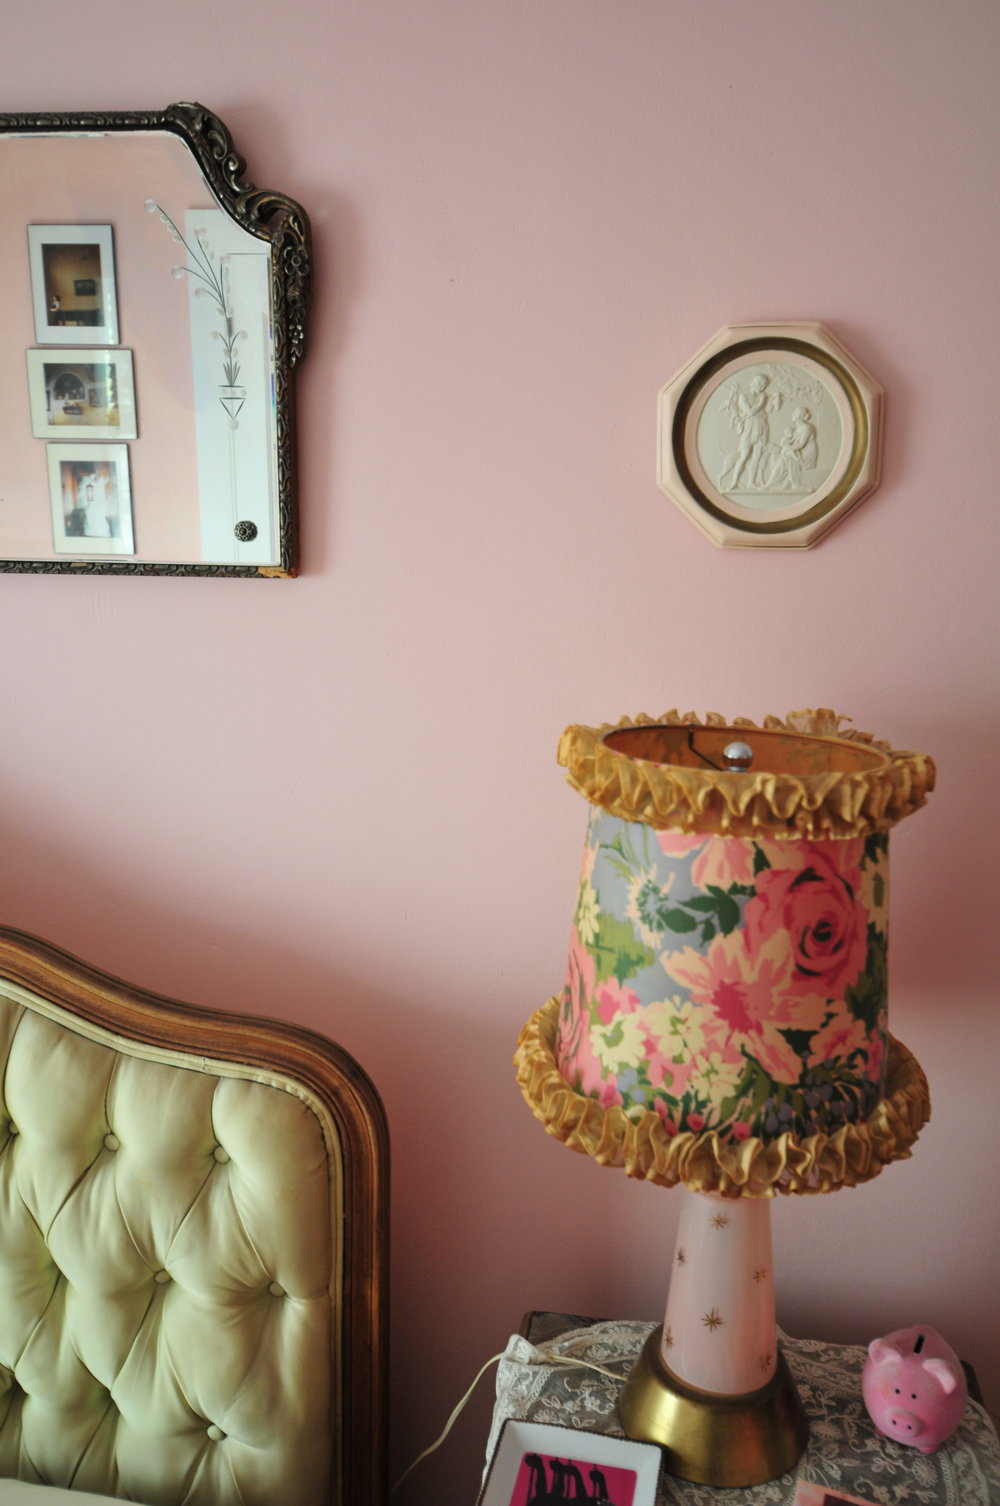 Jaipur Room influenced by the Pink City of India